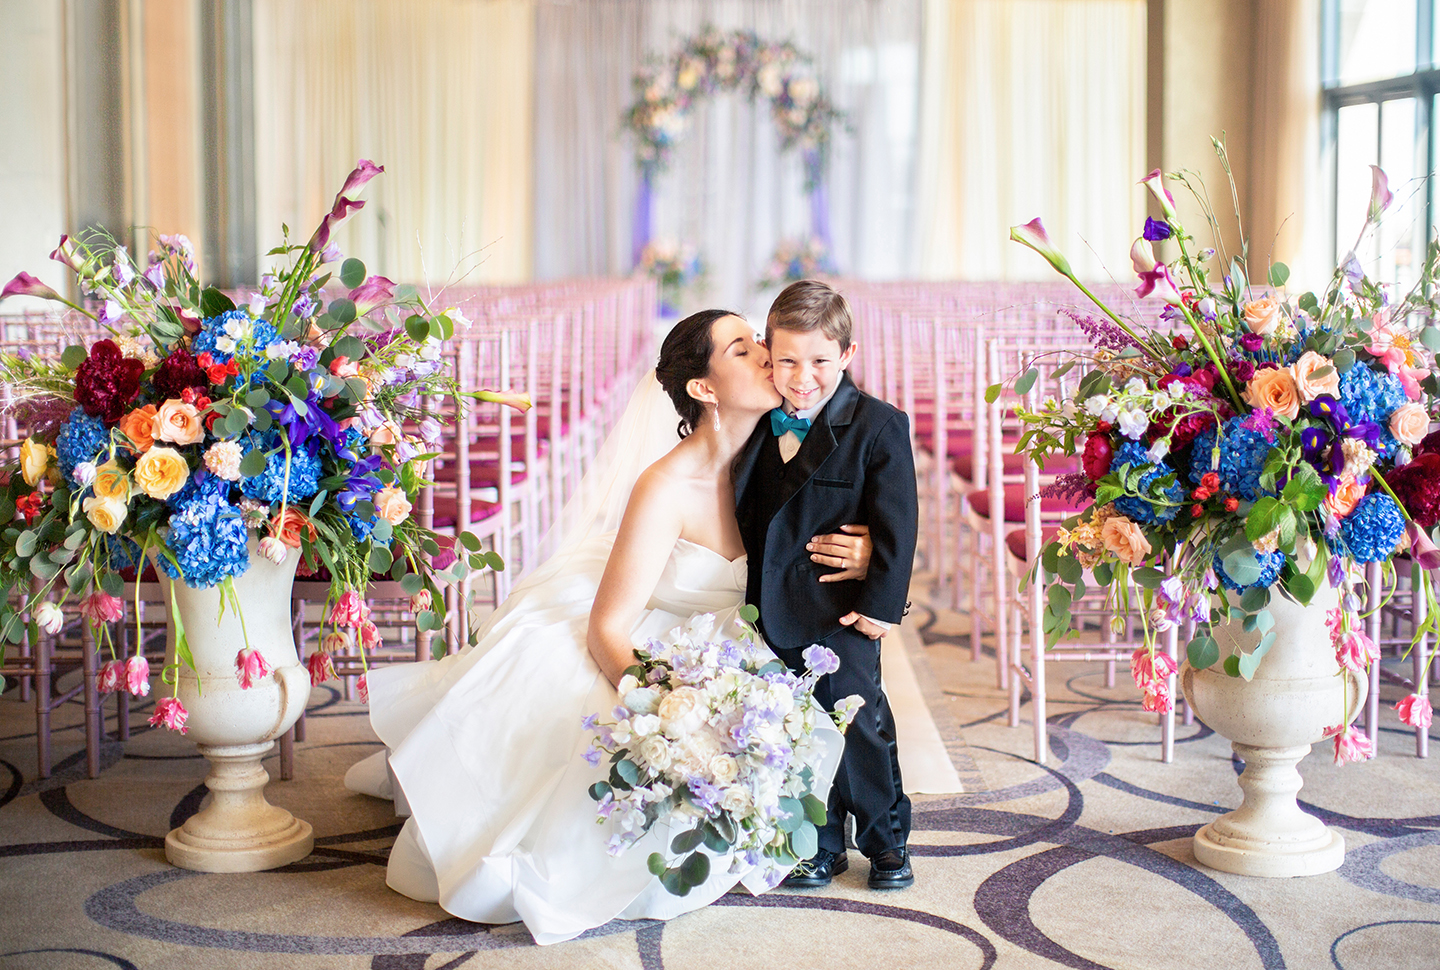 Bride kissing ring bearer in floral aisle - photo by Anna Schmidt - DC